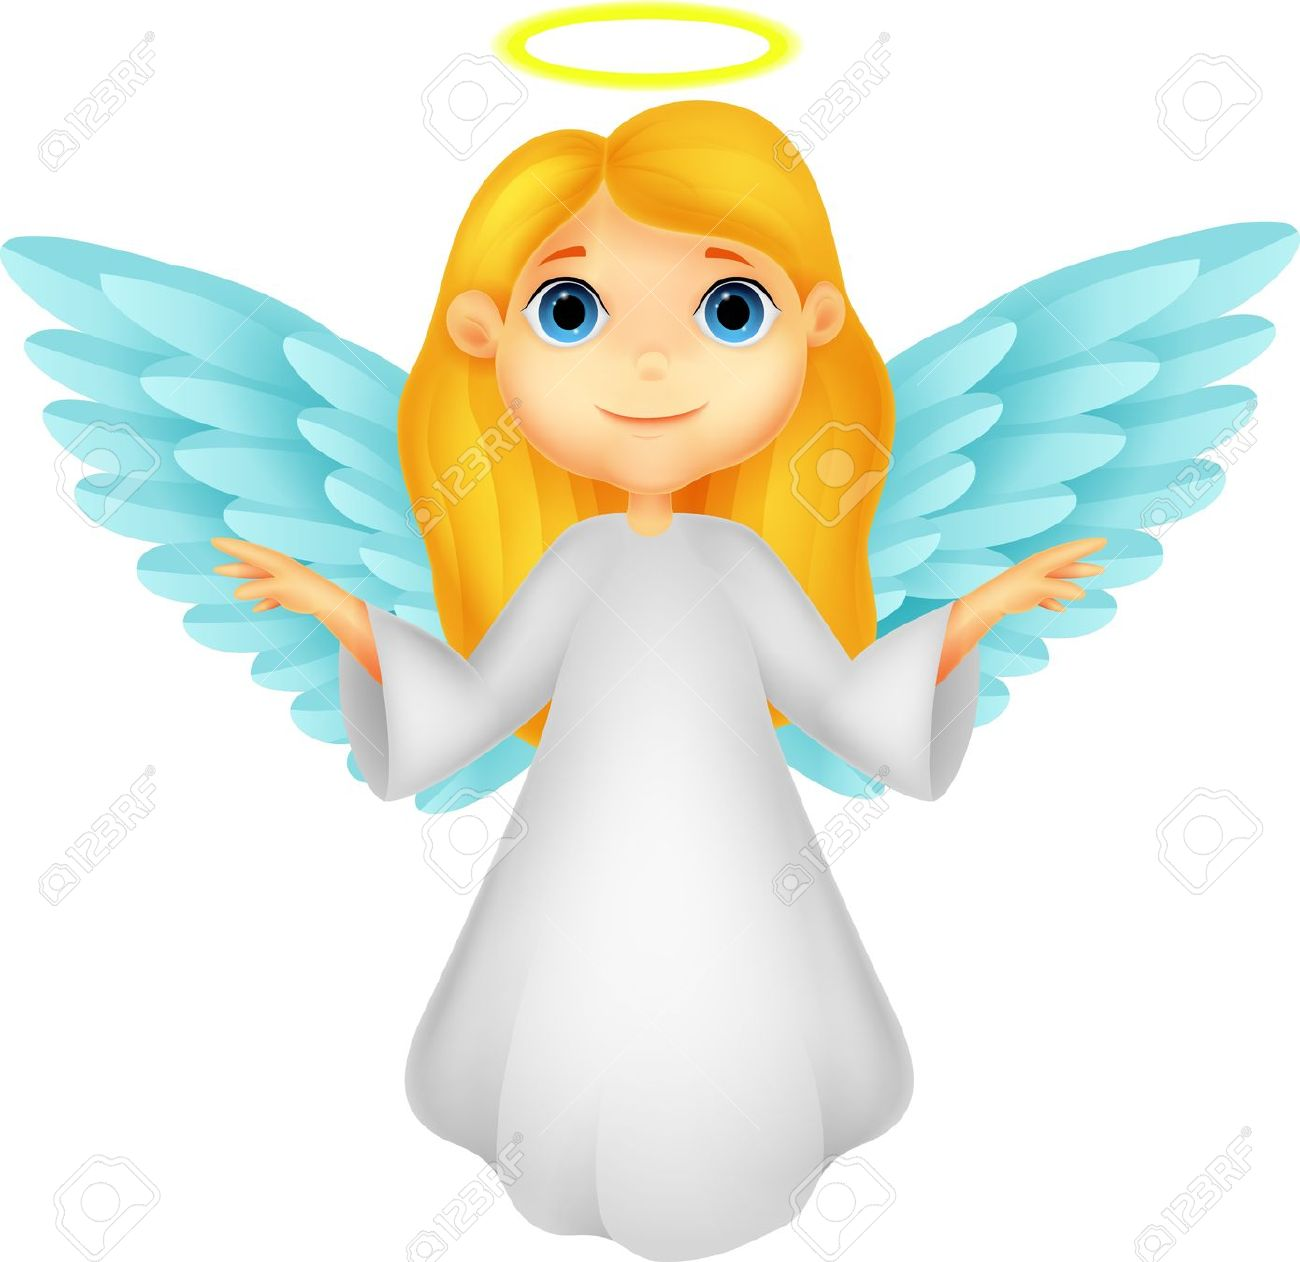 Christmas Angels Images Clip Art.17 Christmas Angel Clip Art Clipartlook